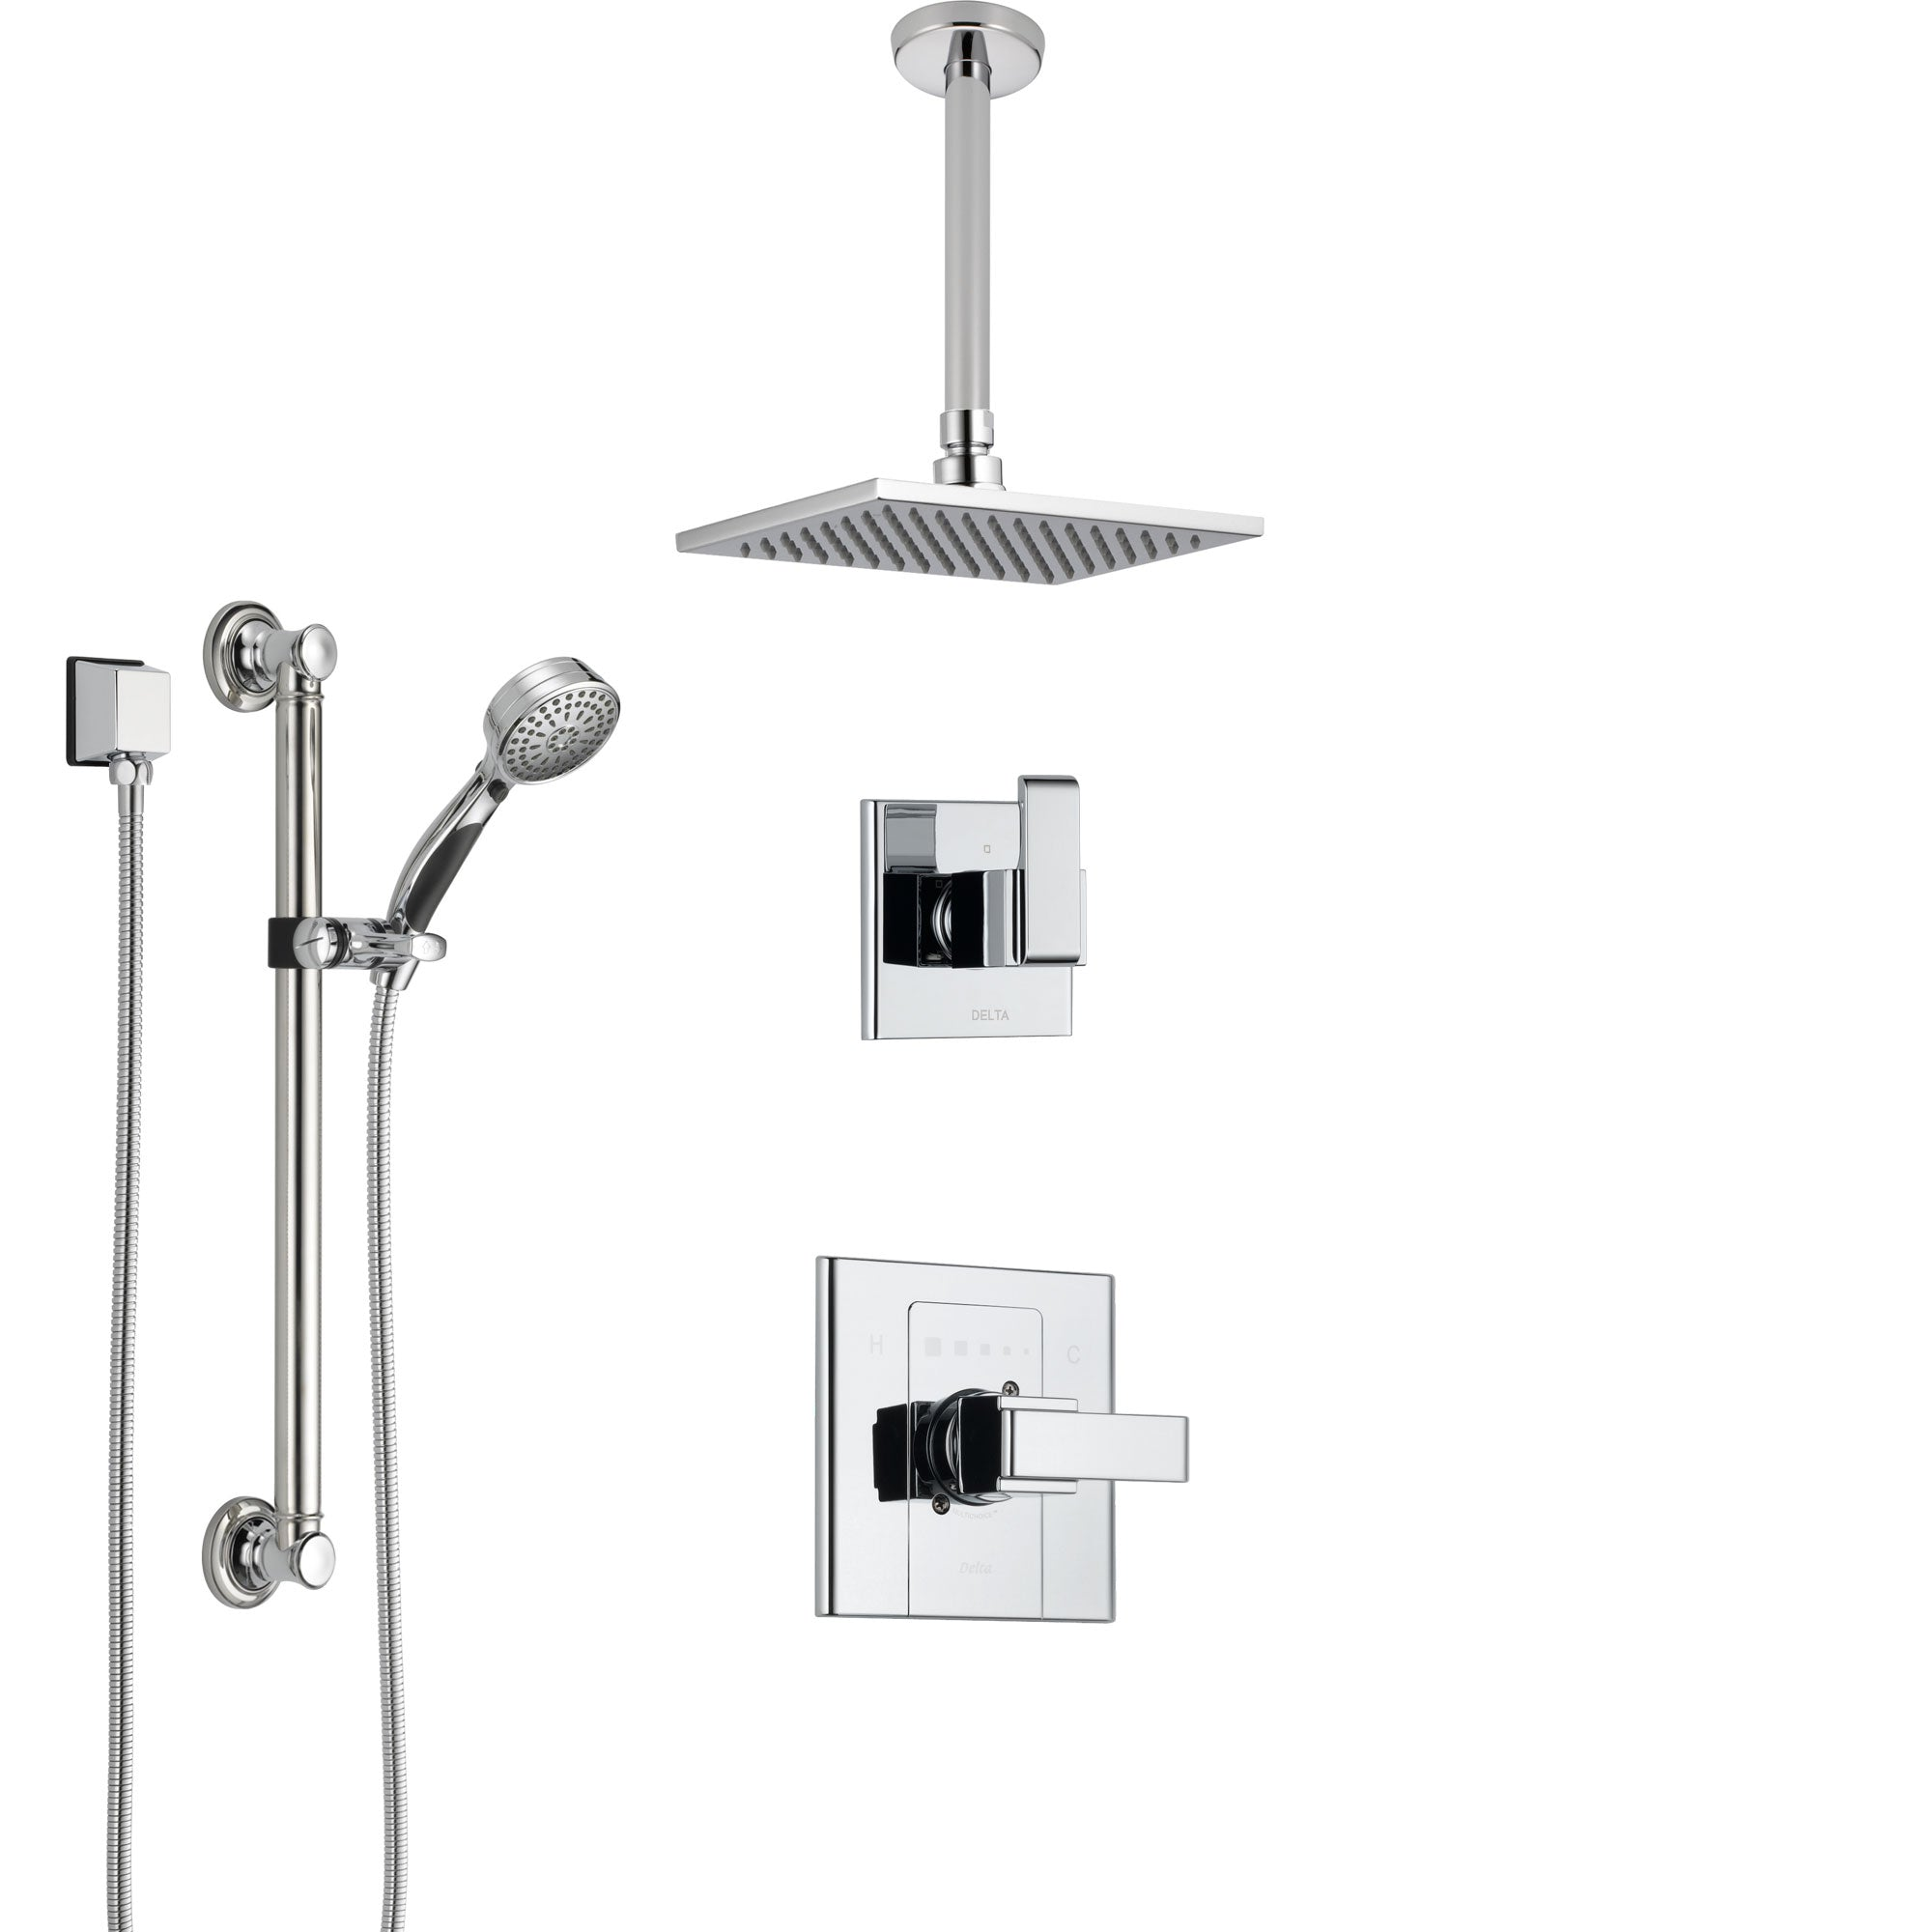 Delta Arzo Chrome Finish Shower System with Control Handle, 3-Setting Diverter, Ceiling Mount Showerhead, and Hand Shower with Grab Bar SS14861